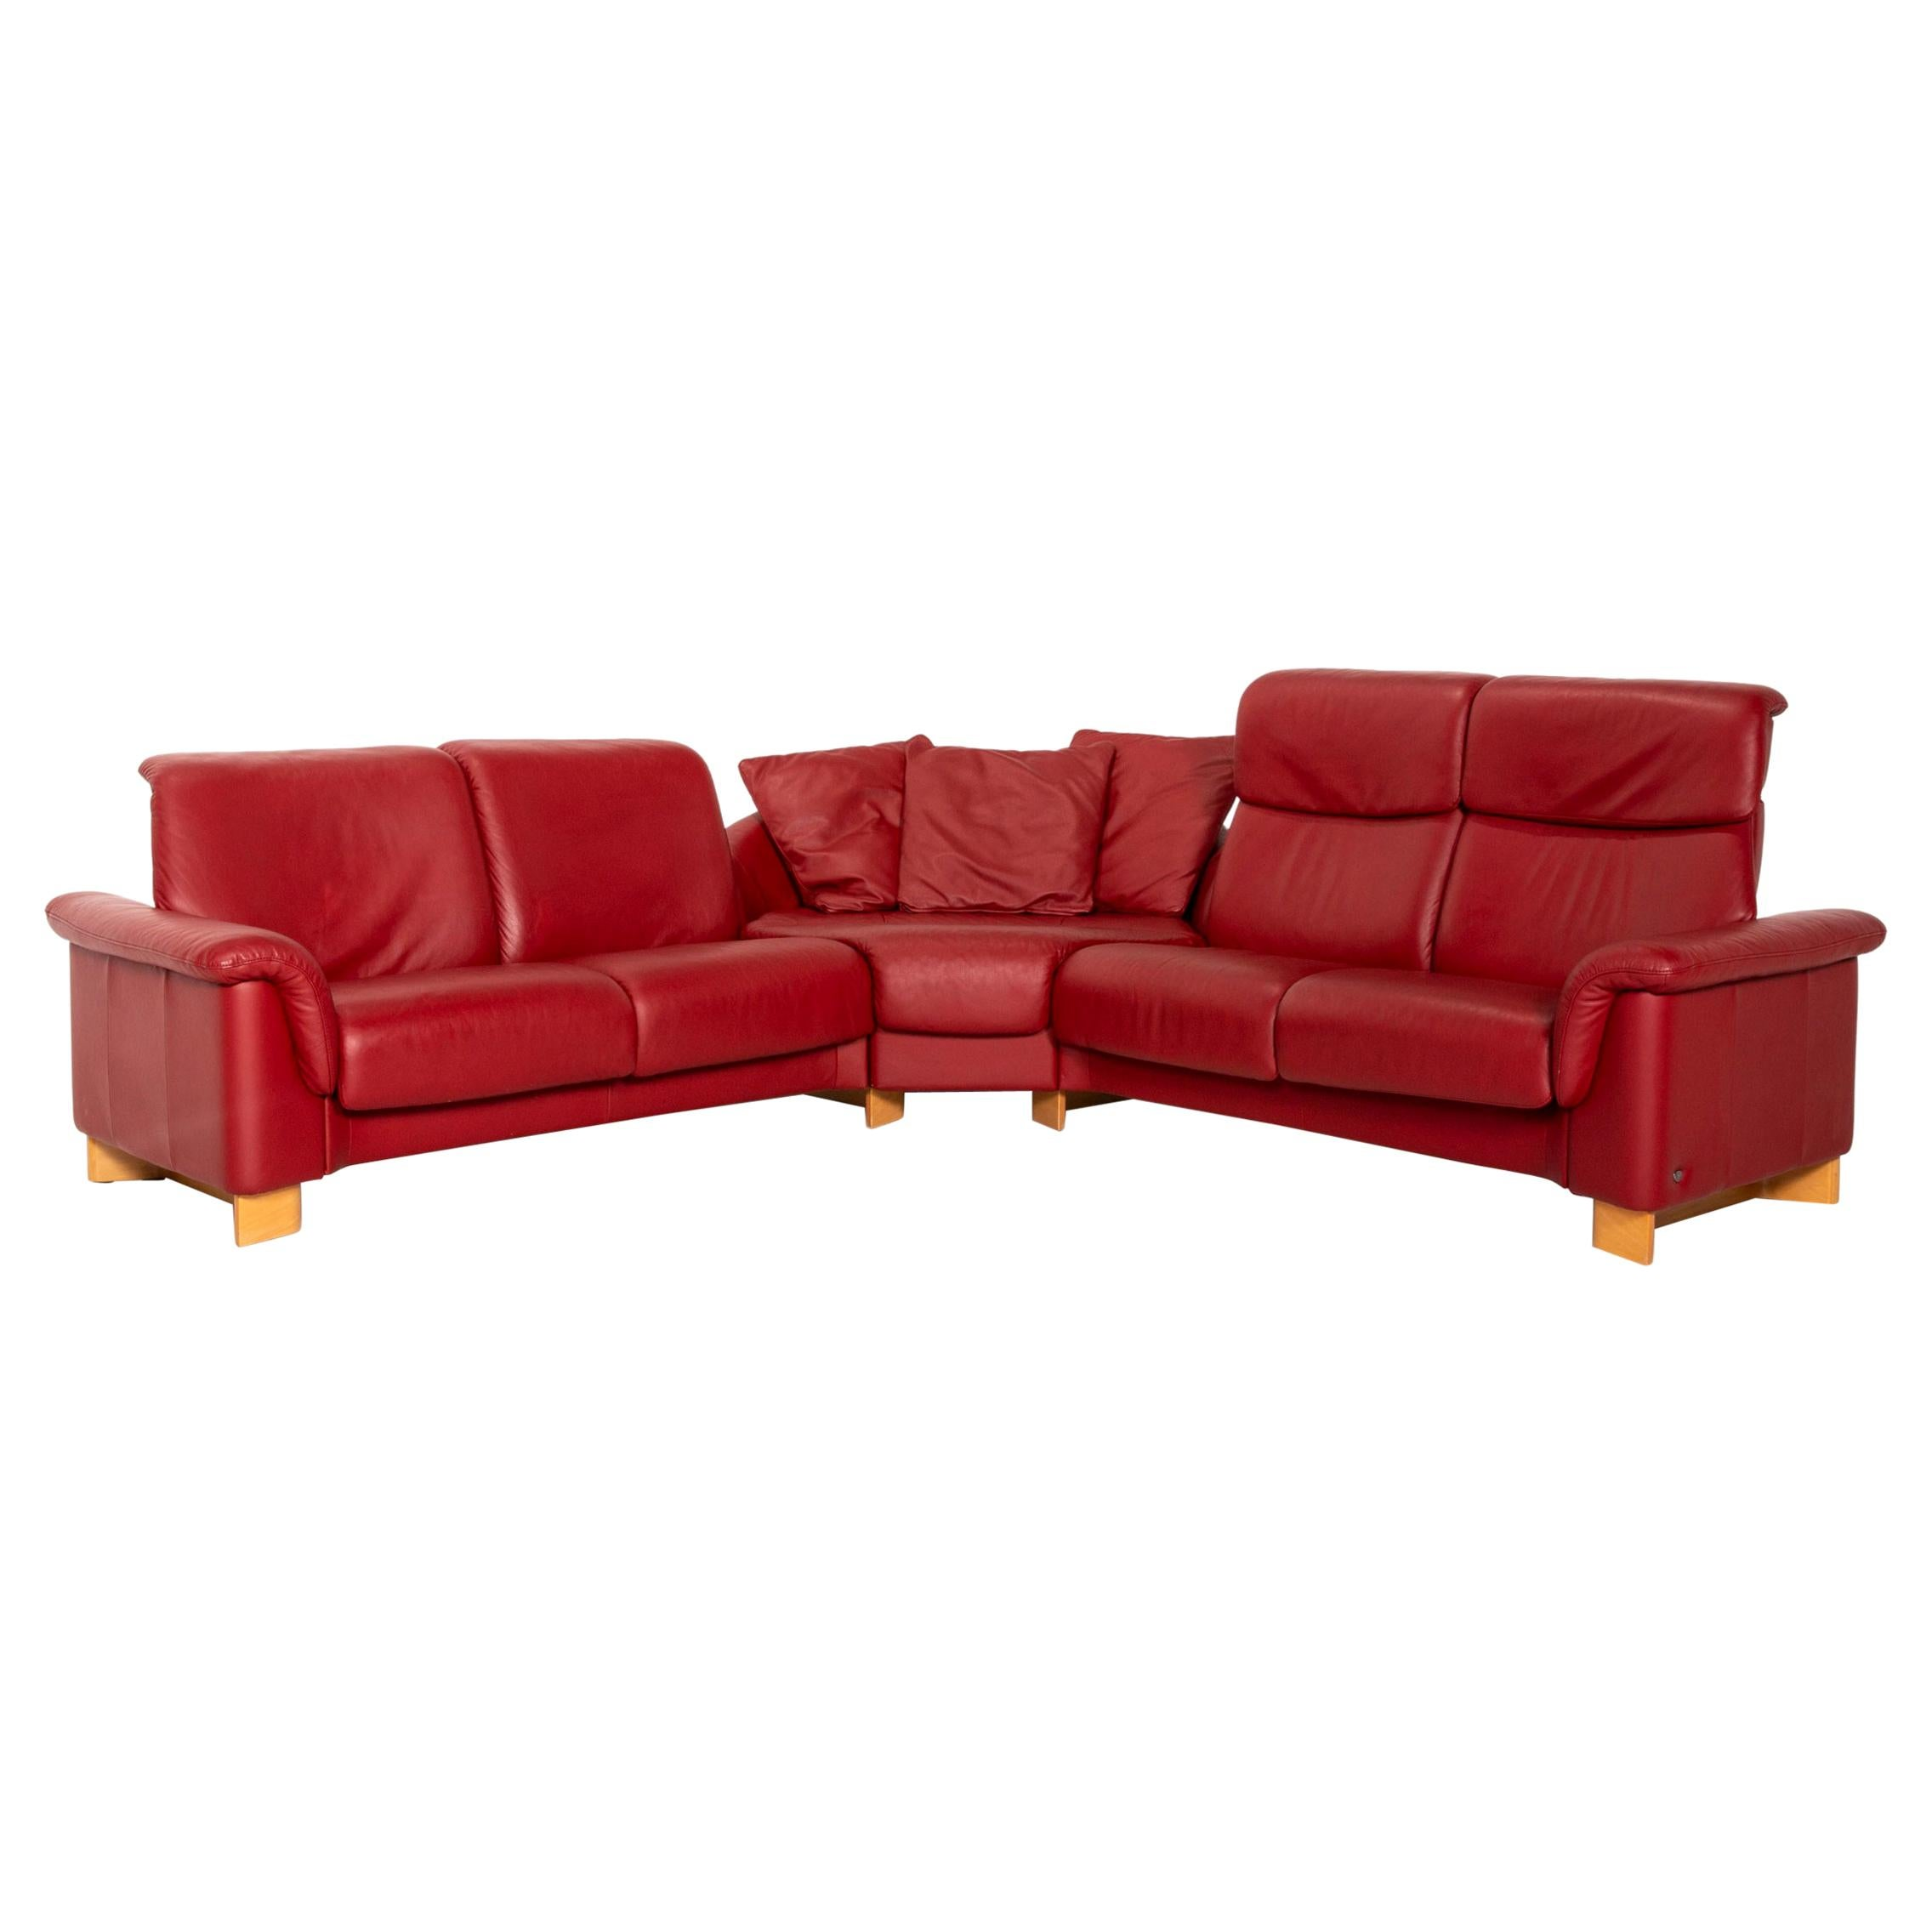 Stressless Paradise Leather Corner Sofa Red Sofa Function Couch